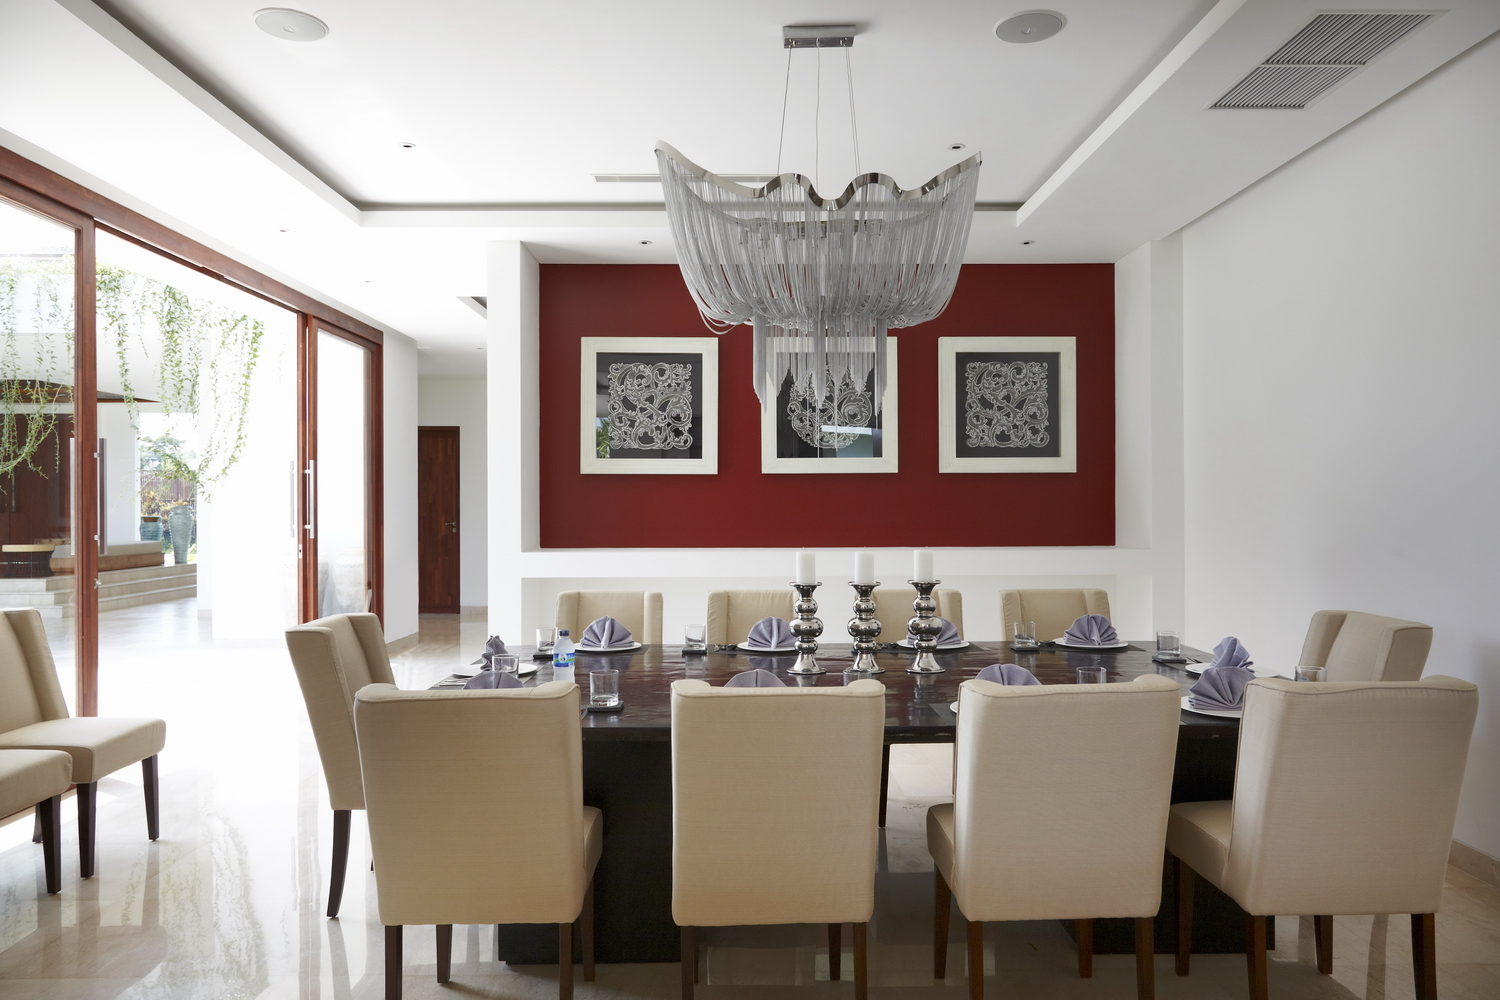 Formal_Dining_For_10_Persons